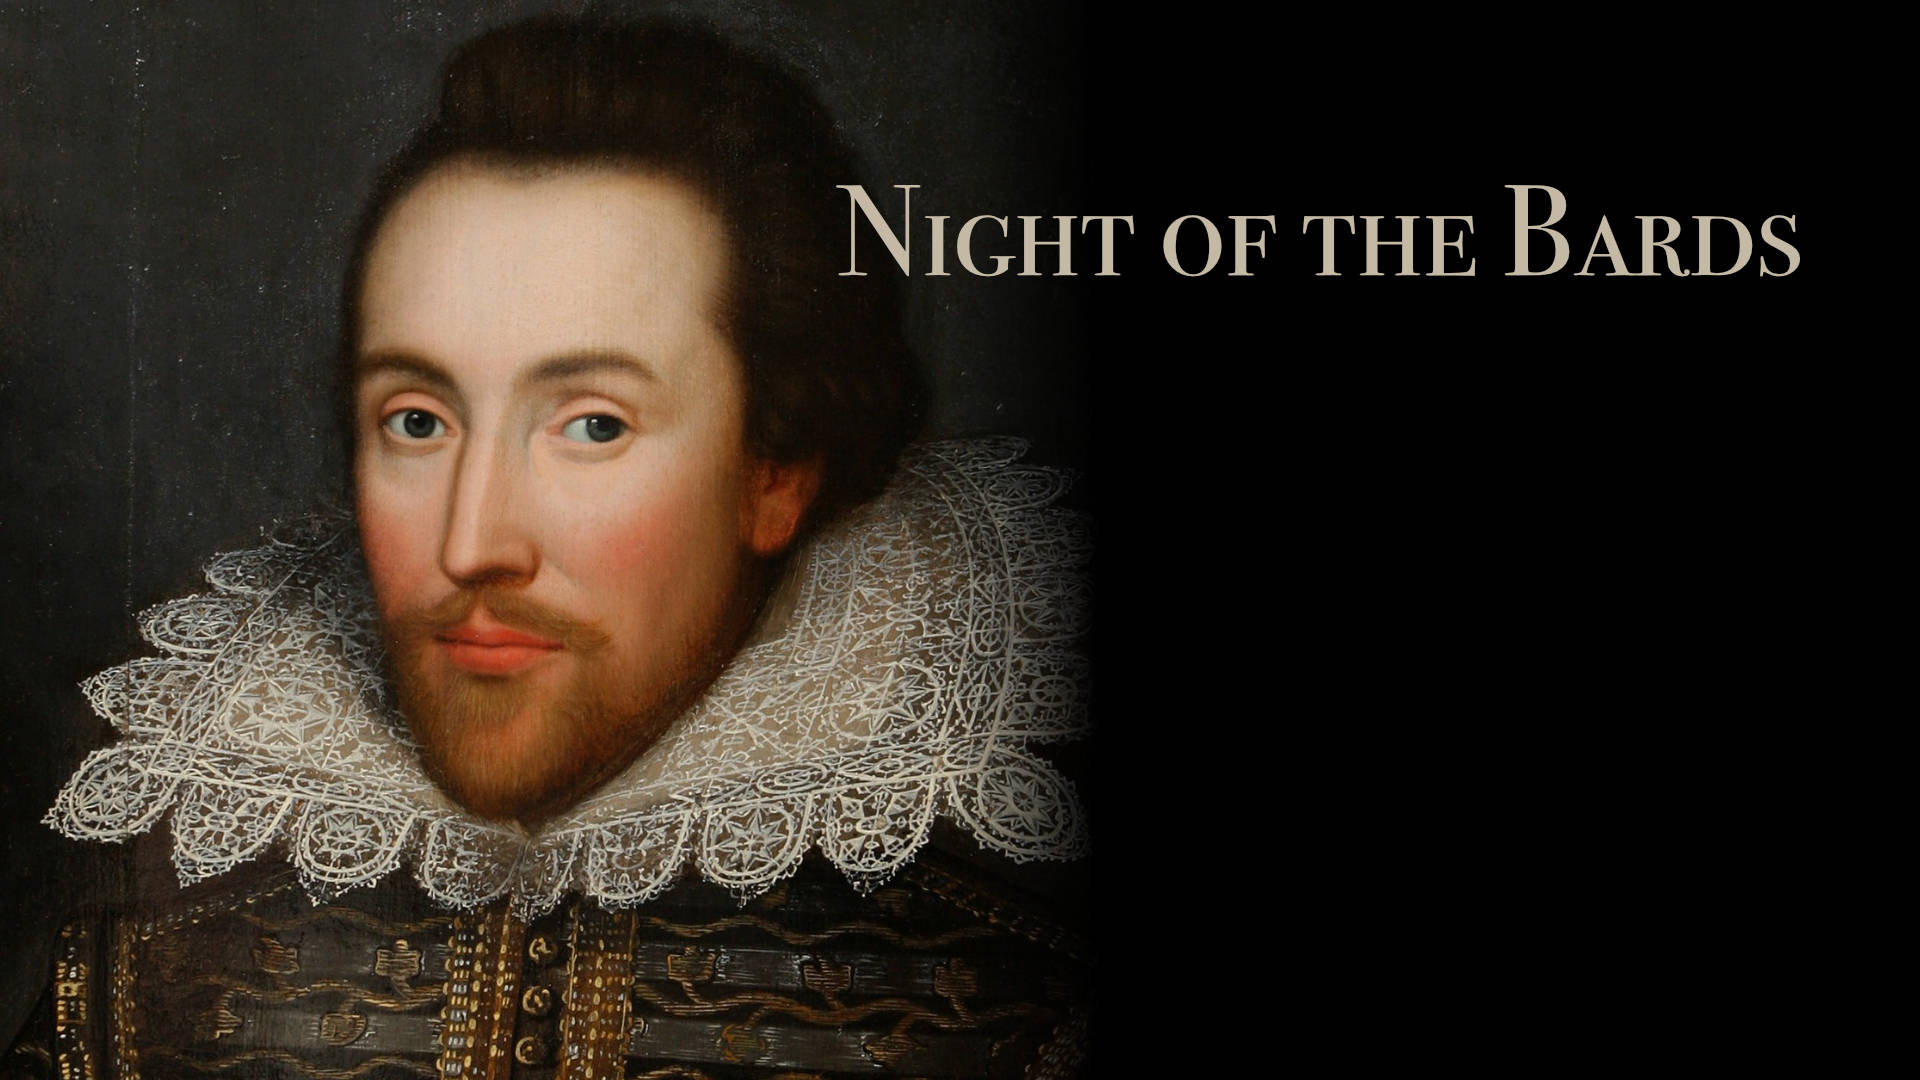 Night of the Bards